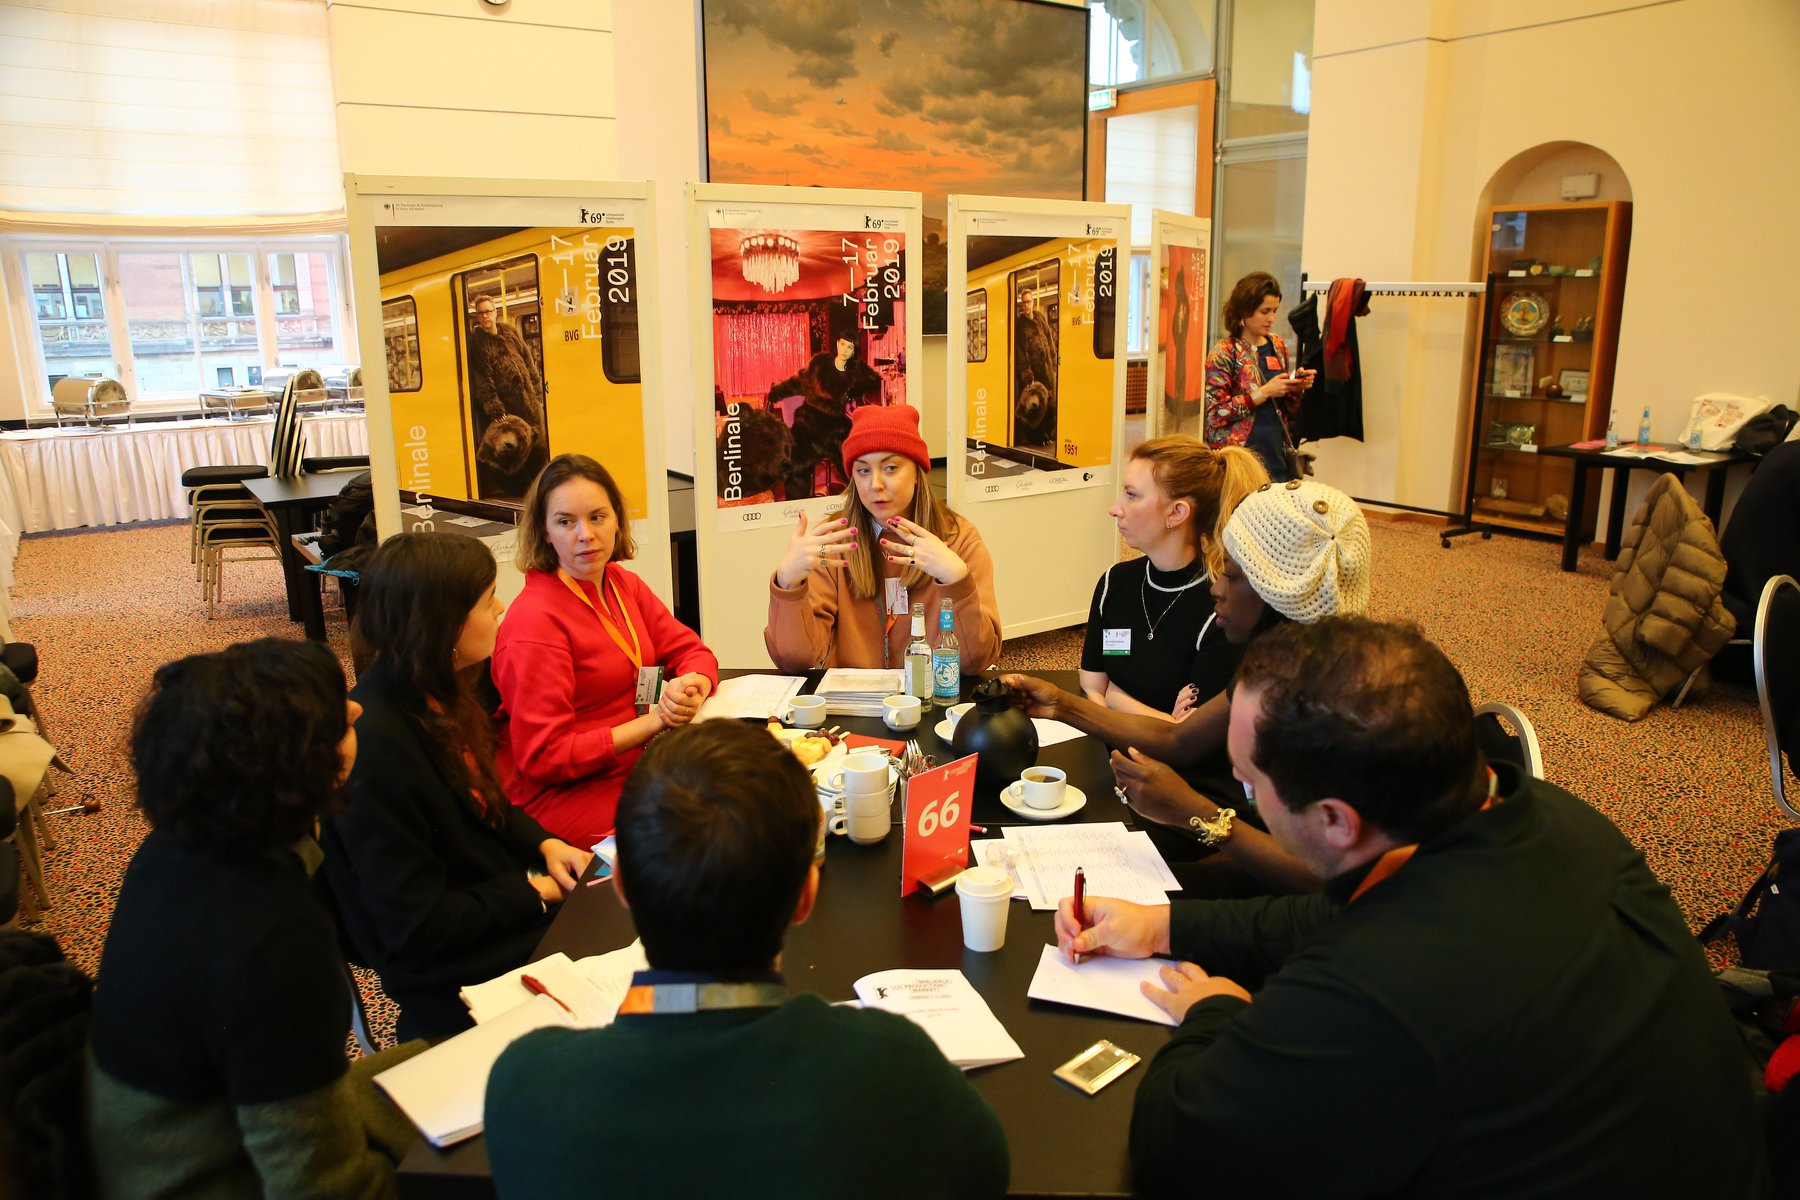 Producers Hub at the European Film Market to show work by Chilean producers